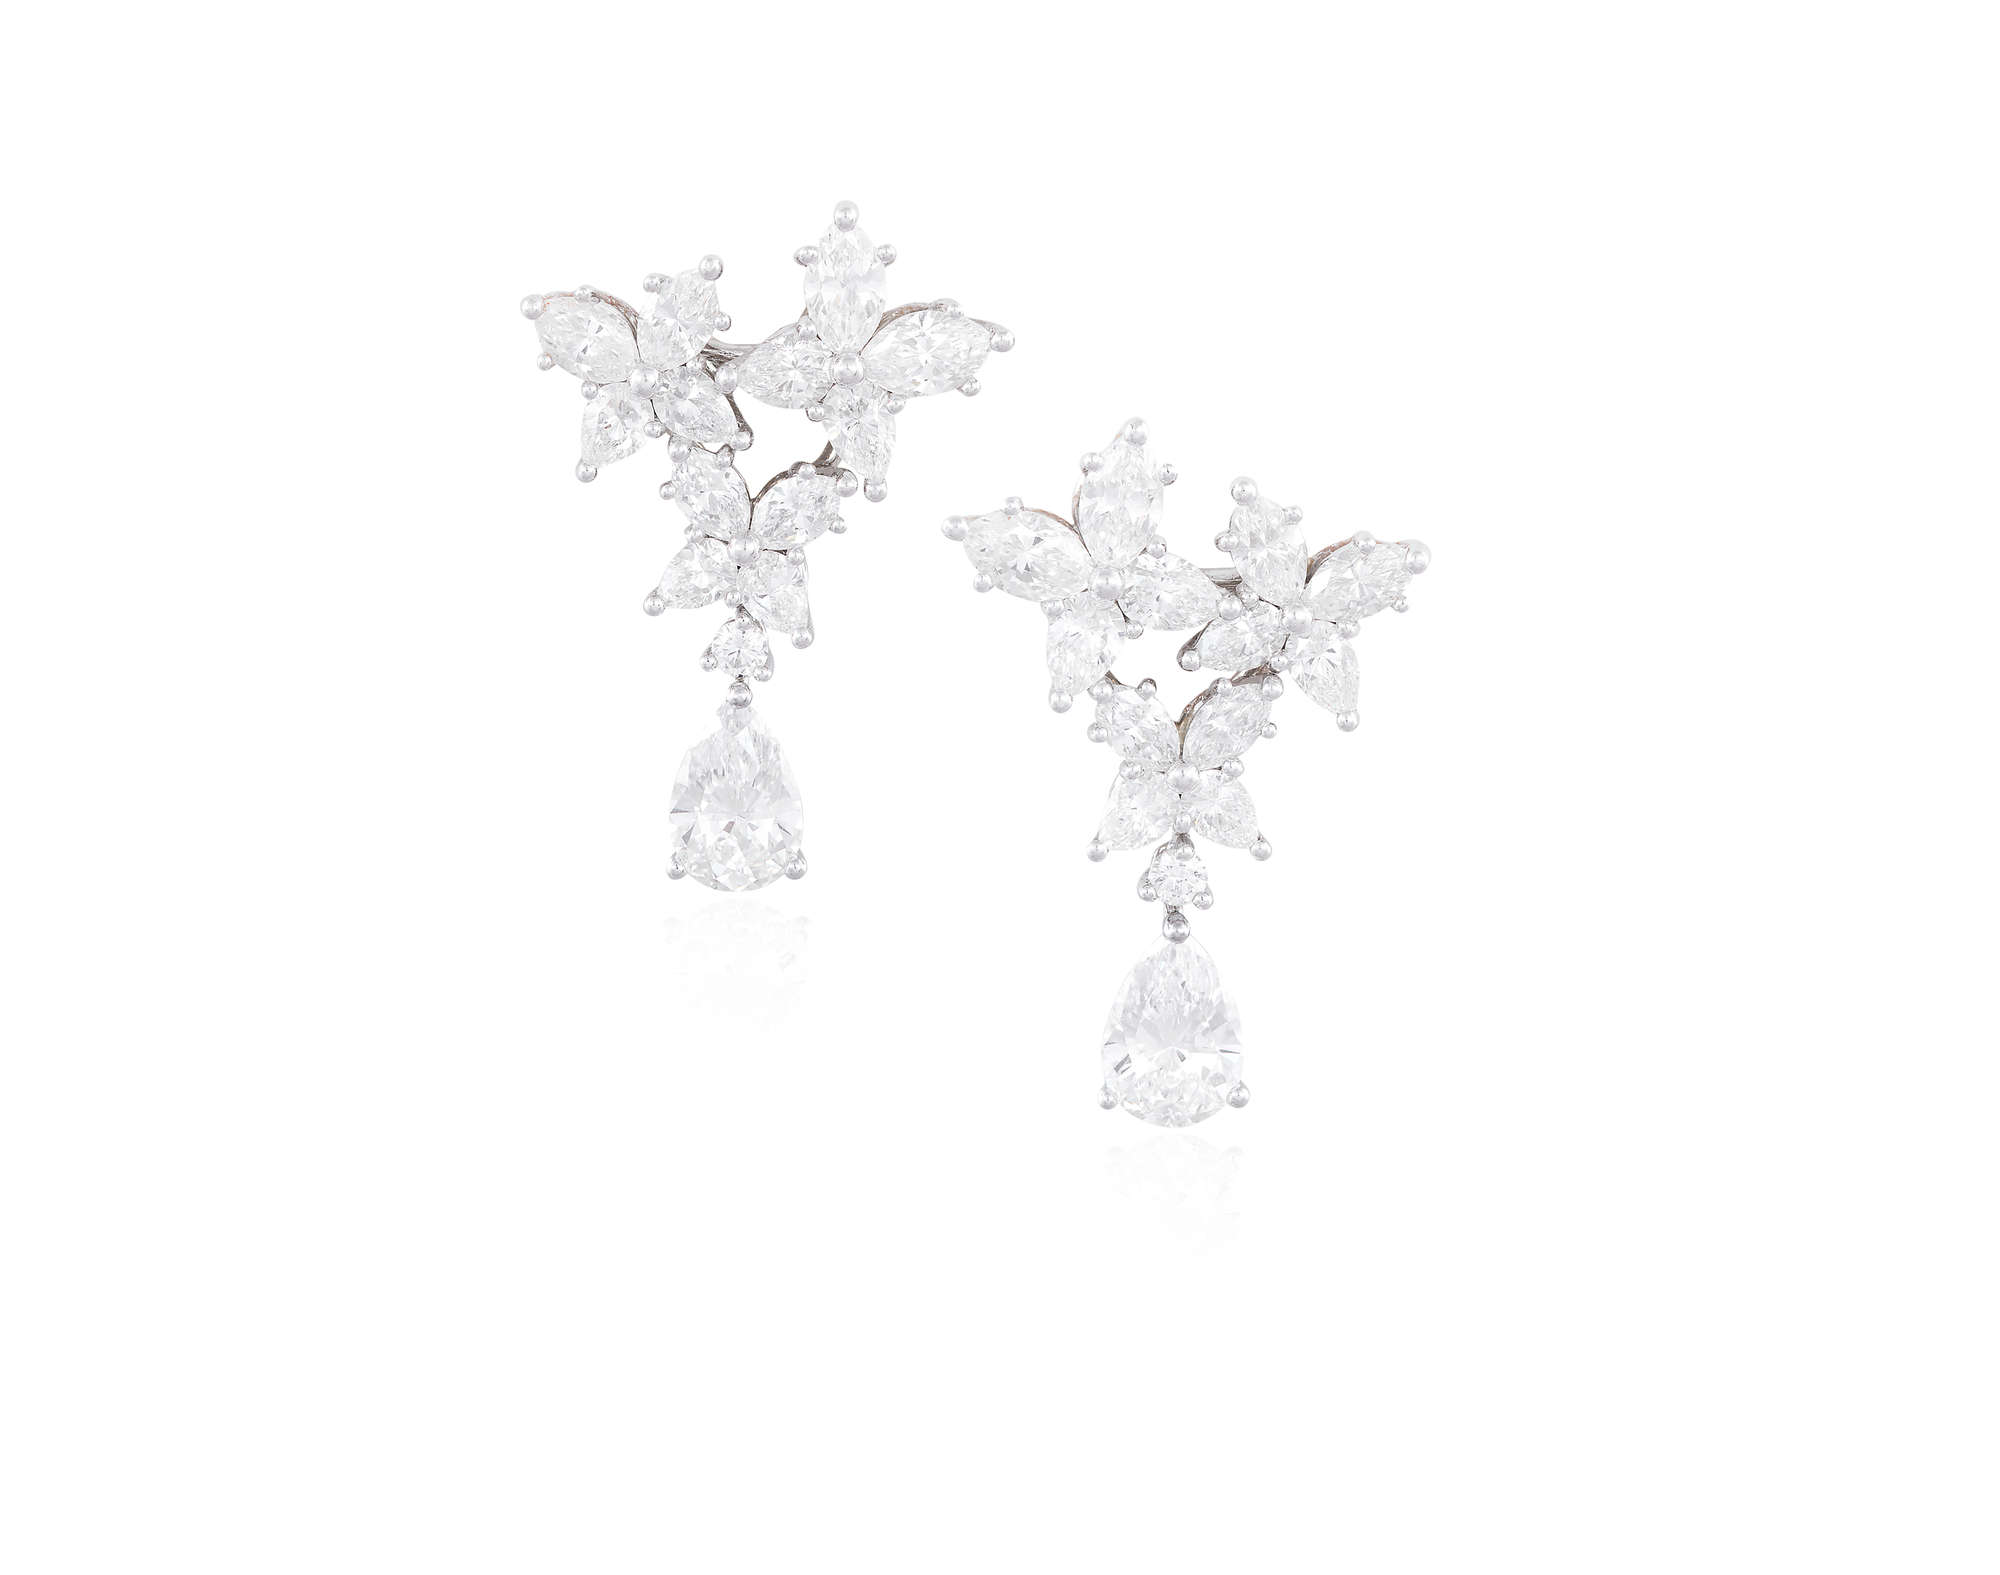 ad0408bf2faa5 LOT:146   A FINE PAIR OF DIAMOND PENDENT EARCLIPS, BY HARRY WINSTON ...